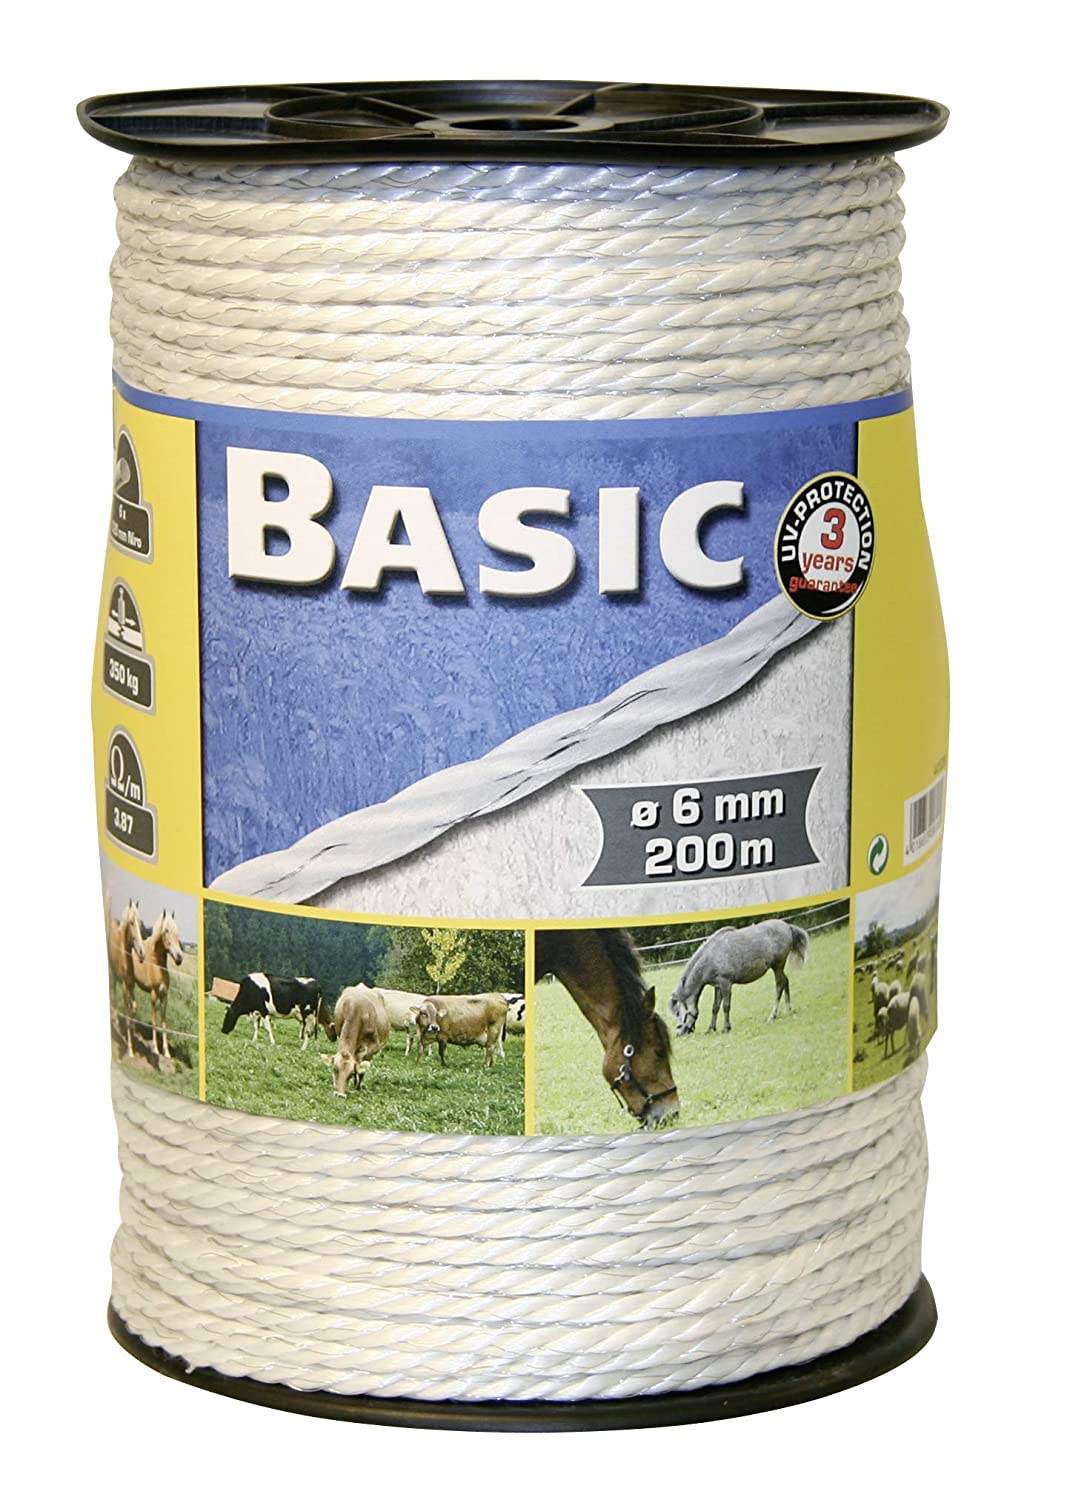 BASIC FENCING ROPE C W S STEEL WIRES 200M - - CRL0545